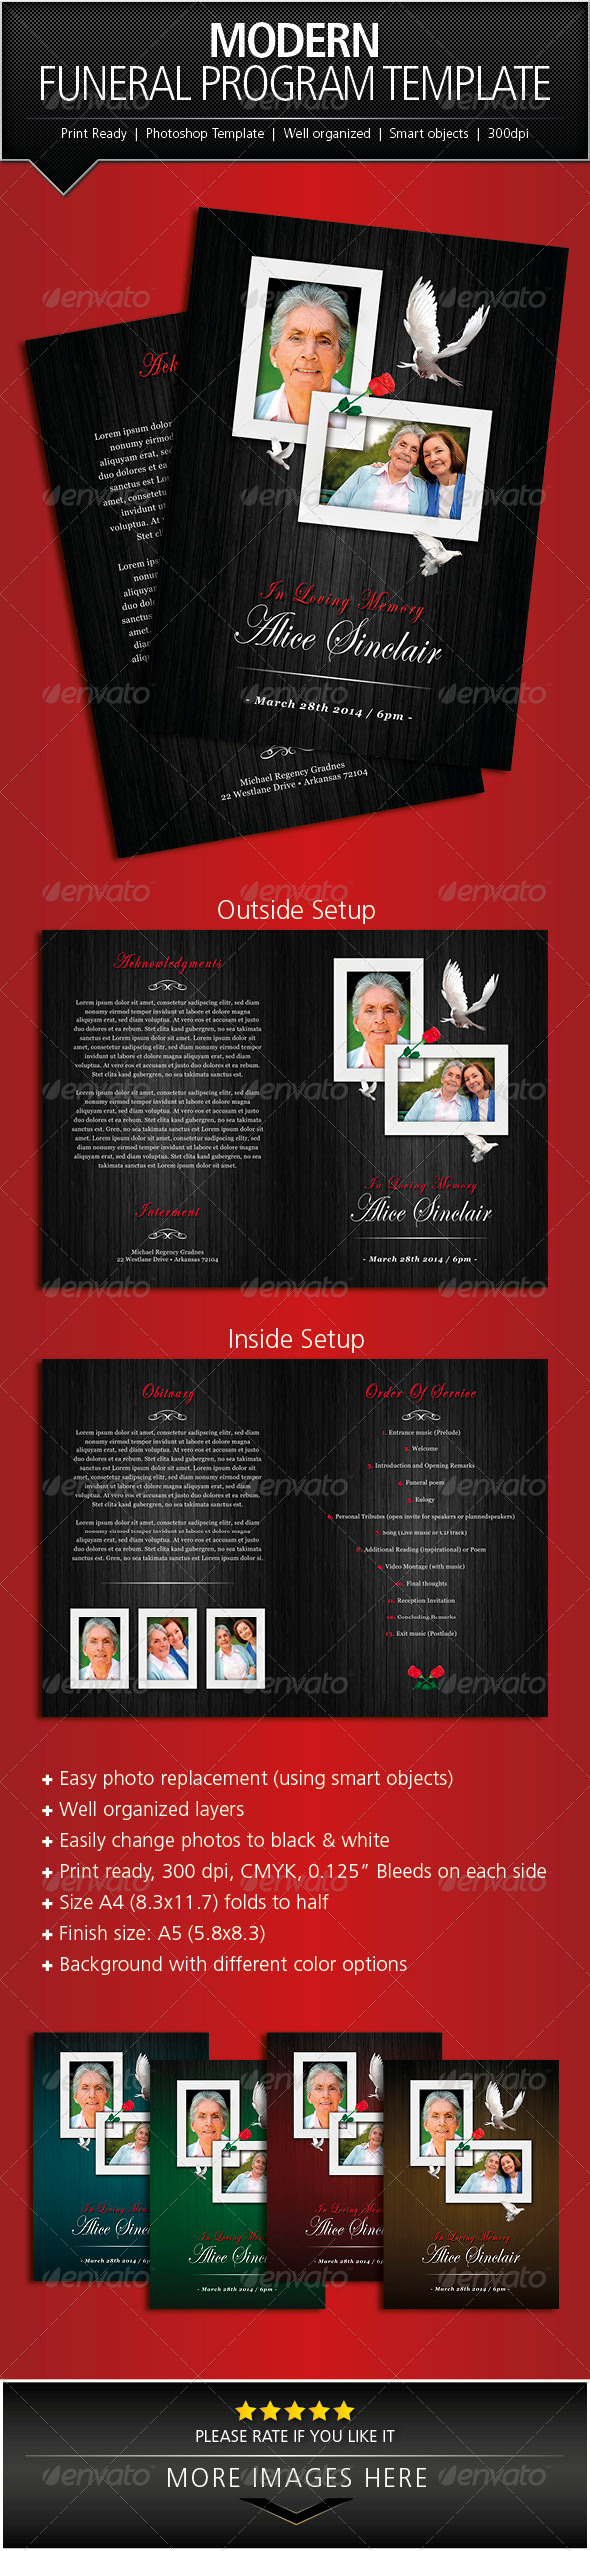 Funeral Programs Template Free Graphics, Designs & Templates